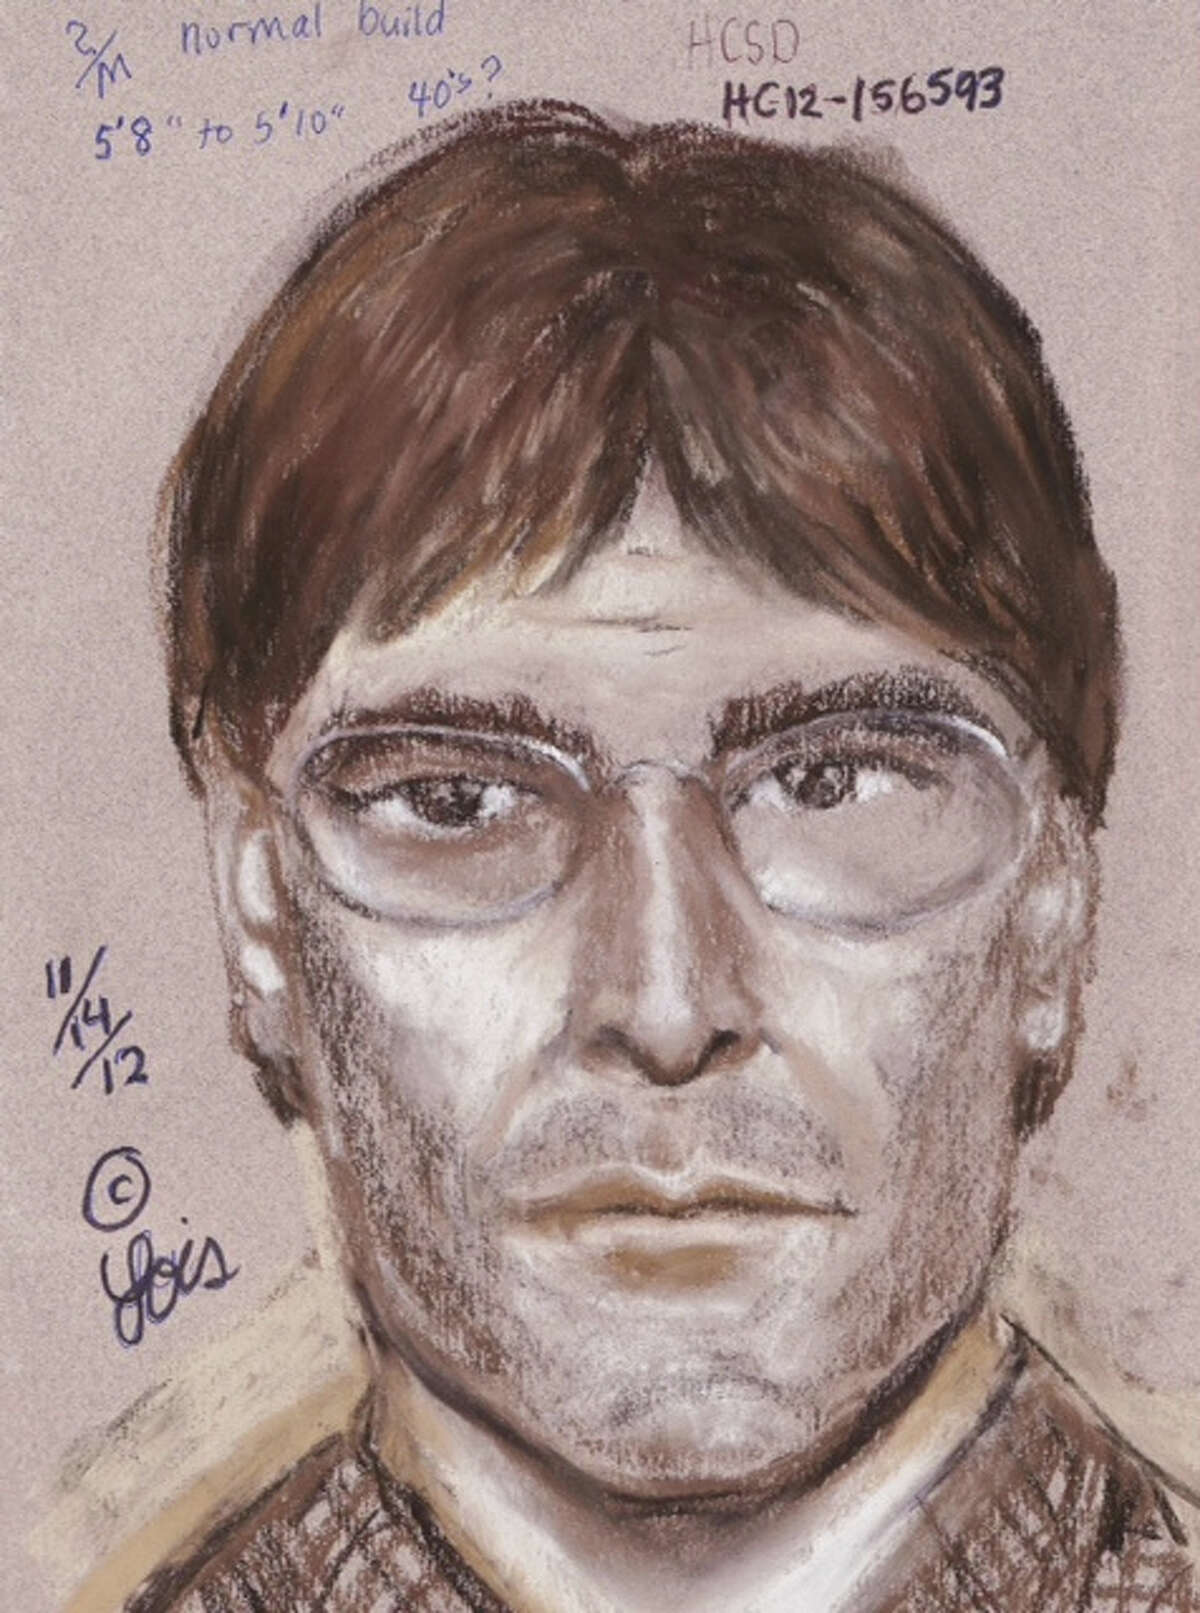 This man is wanted for questioning in the slaying of Coty Beavers, who was killed months after the death of his twin brother's girlfriend,Gelareh Bagherzadeh.